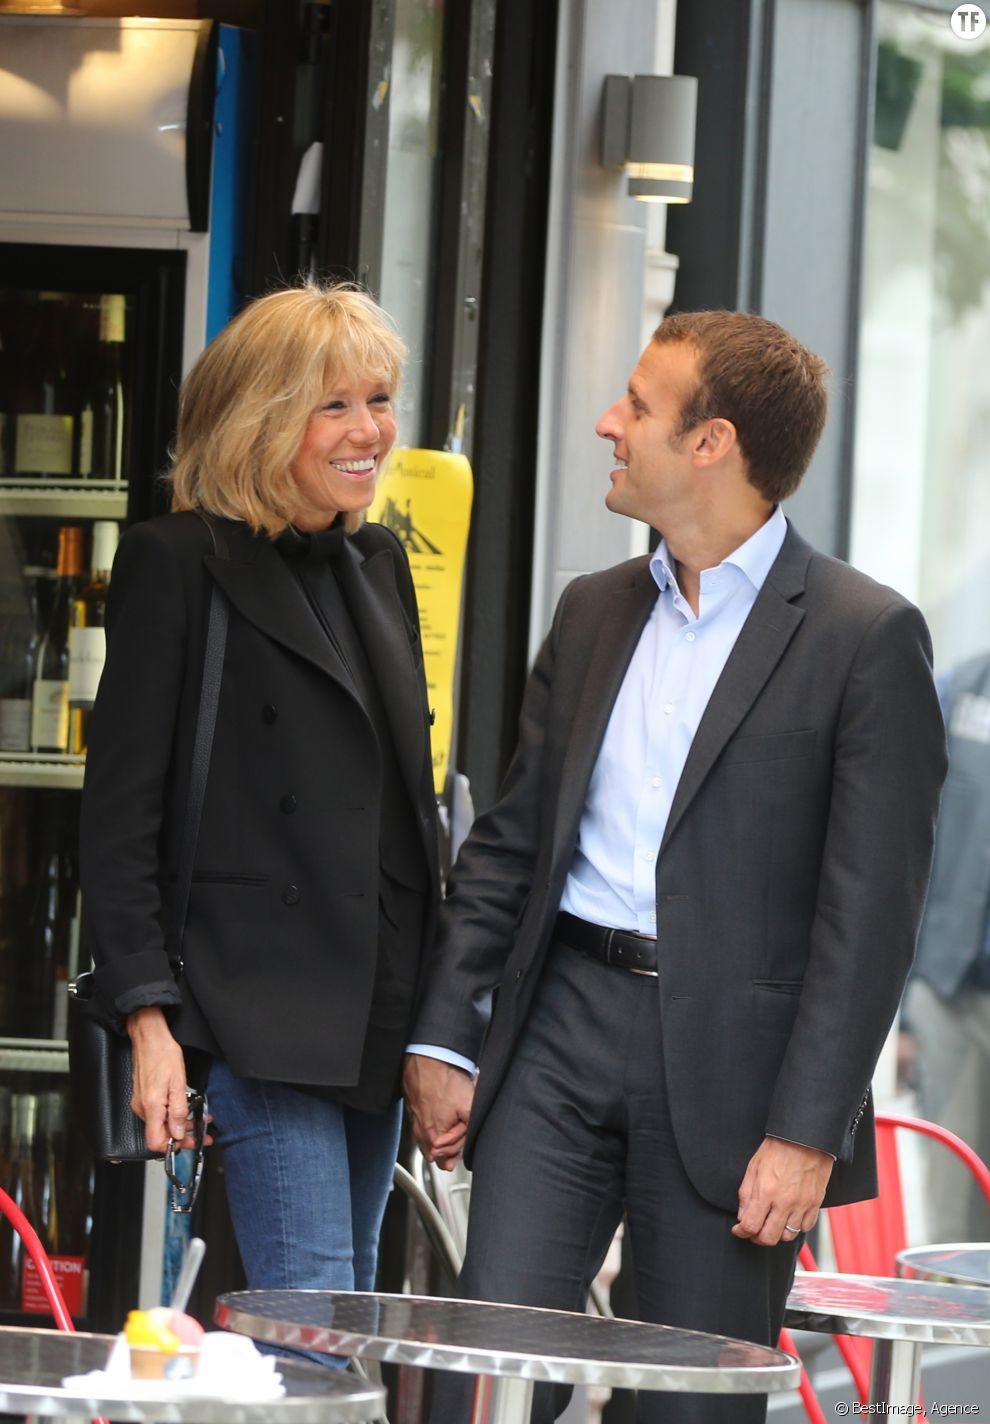 emmanuel macron y brigitte trogneux p gina 23 cotilleando el mejor foro de cotilleos sobre. Black Bedroom Furniture Sets. Home Design Ideas